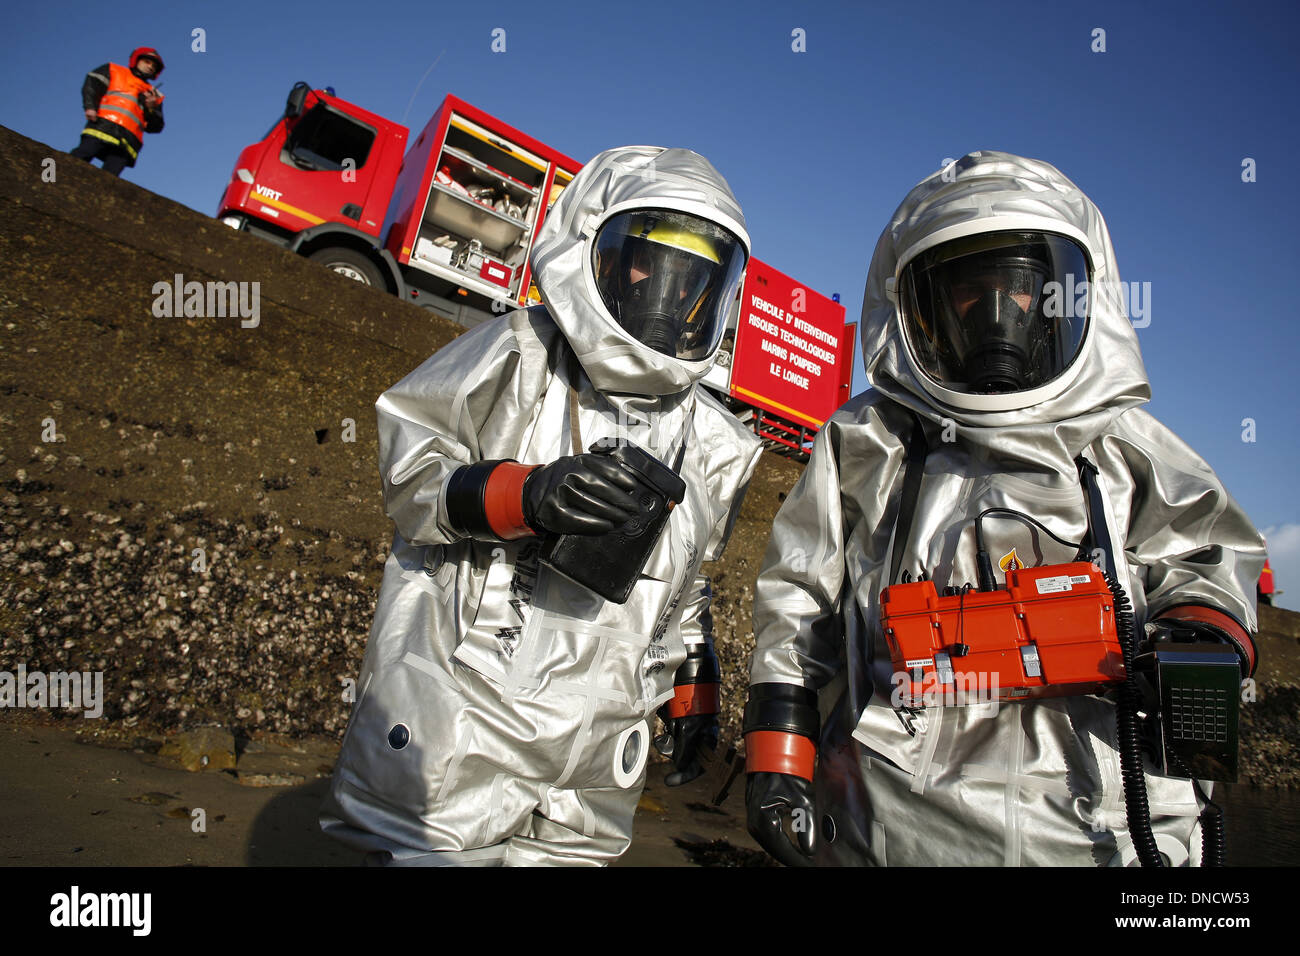 Fire team specialized in chemical, biological, radiological and nuclear defense (CBRN defense or CBRND) - Stock Image